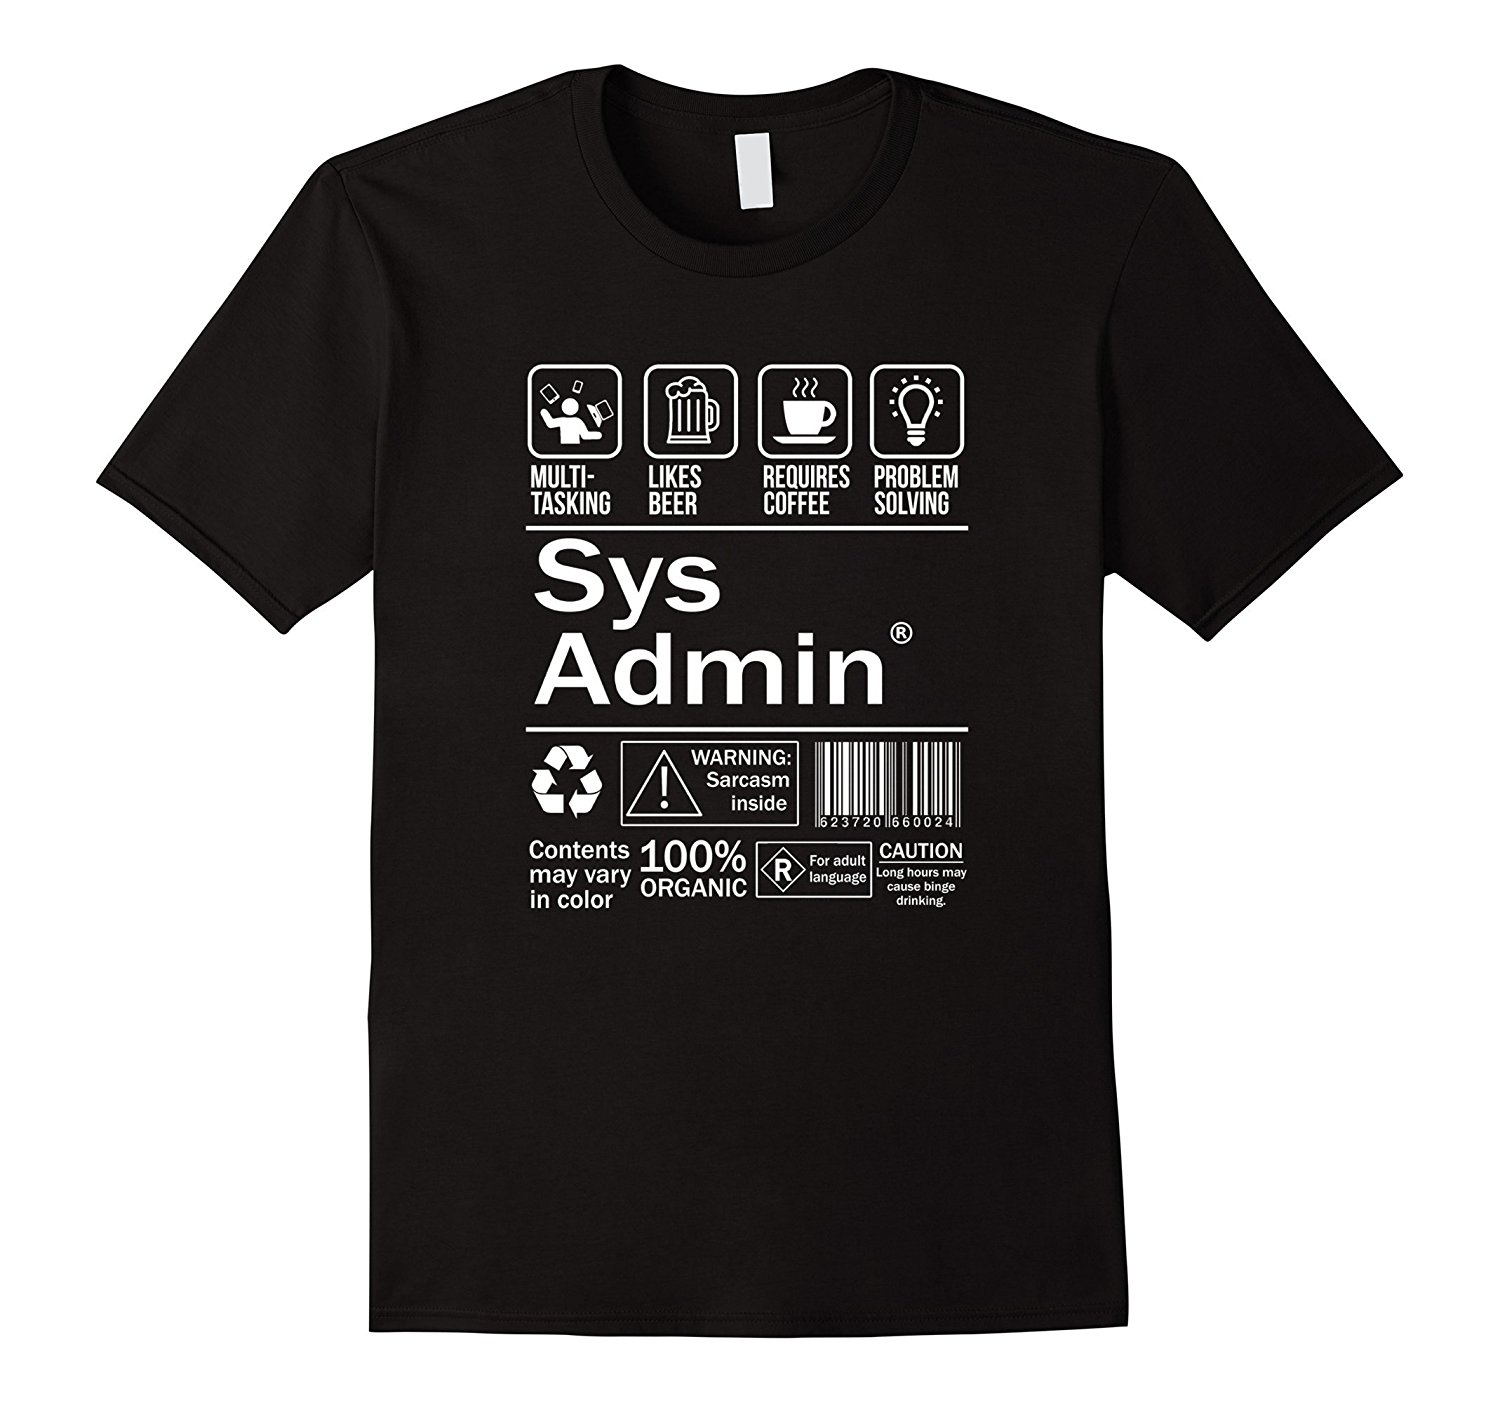 System Administrator Product Label T-Shirt Unix Linux Coffee T Shirt Casual Short Sleeve for Men Clothing Summer Top Tee